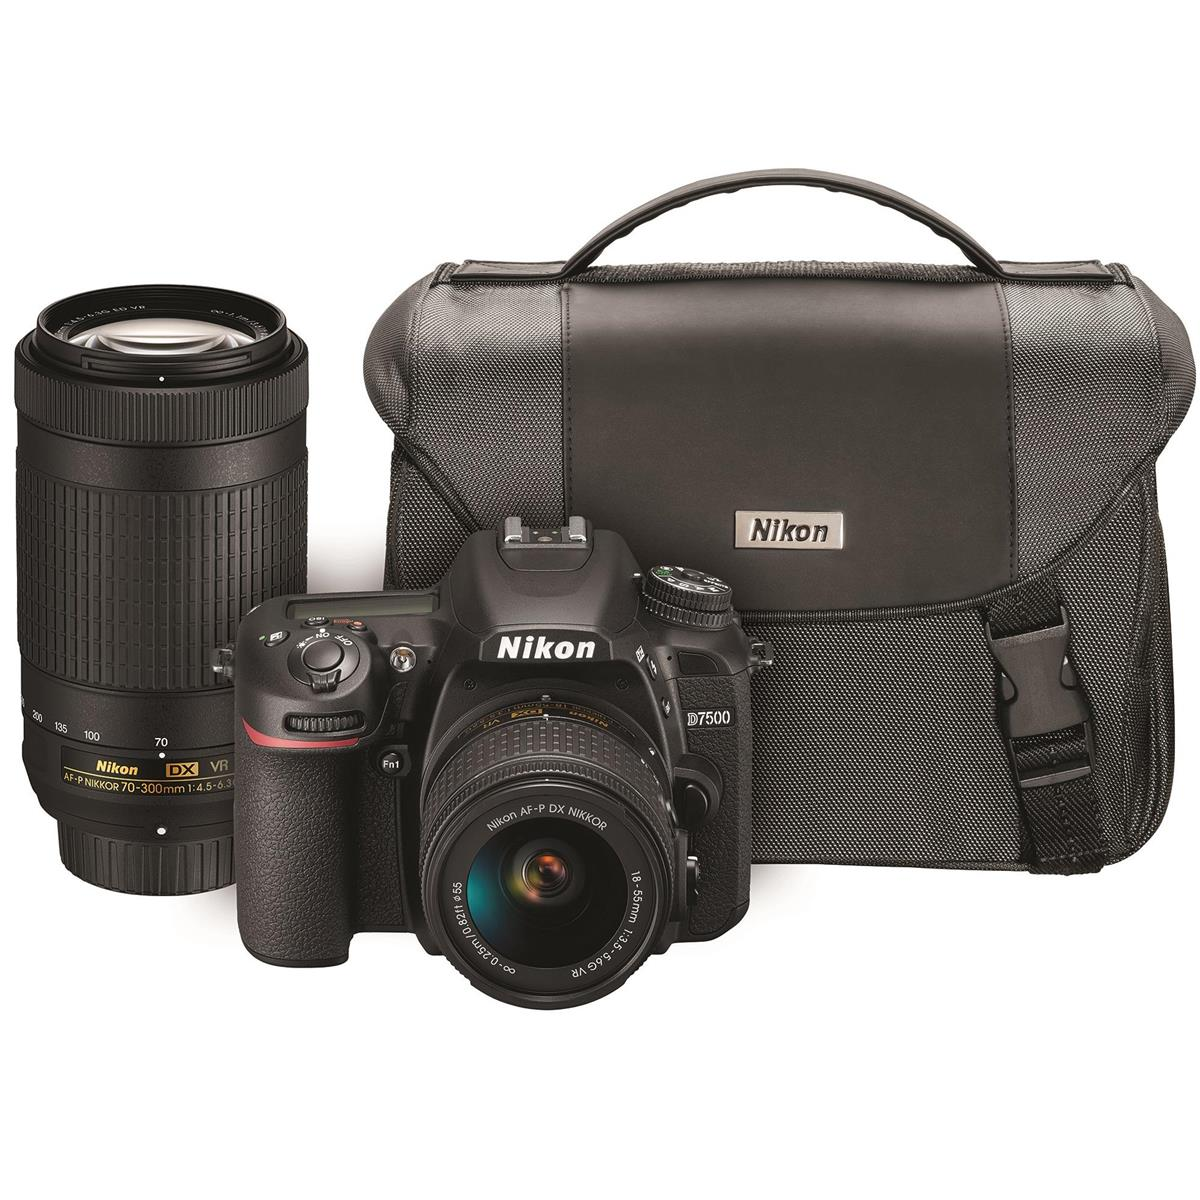 Nikon D7500 DSLR Camera with 18-55mm and and 70-300mm Lenses Kit